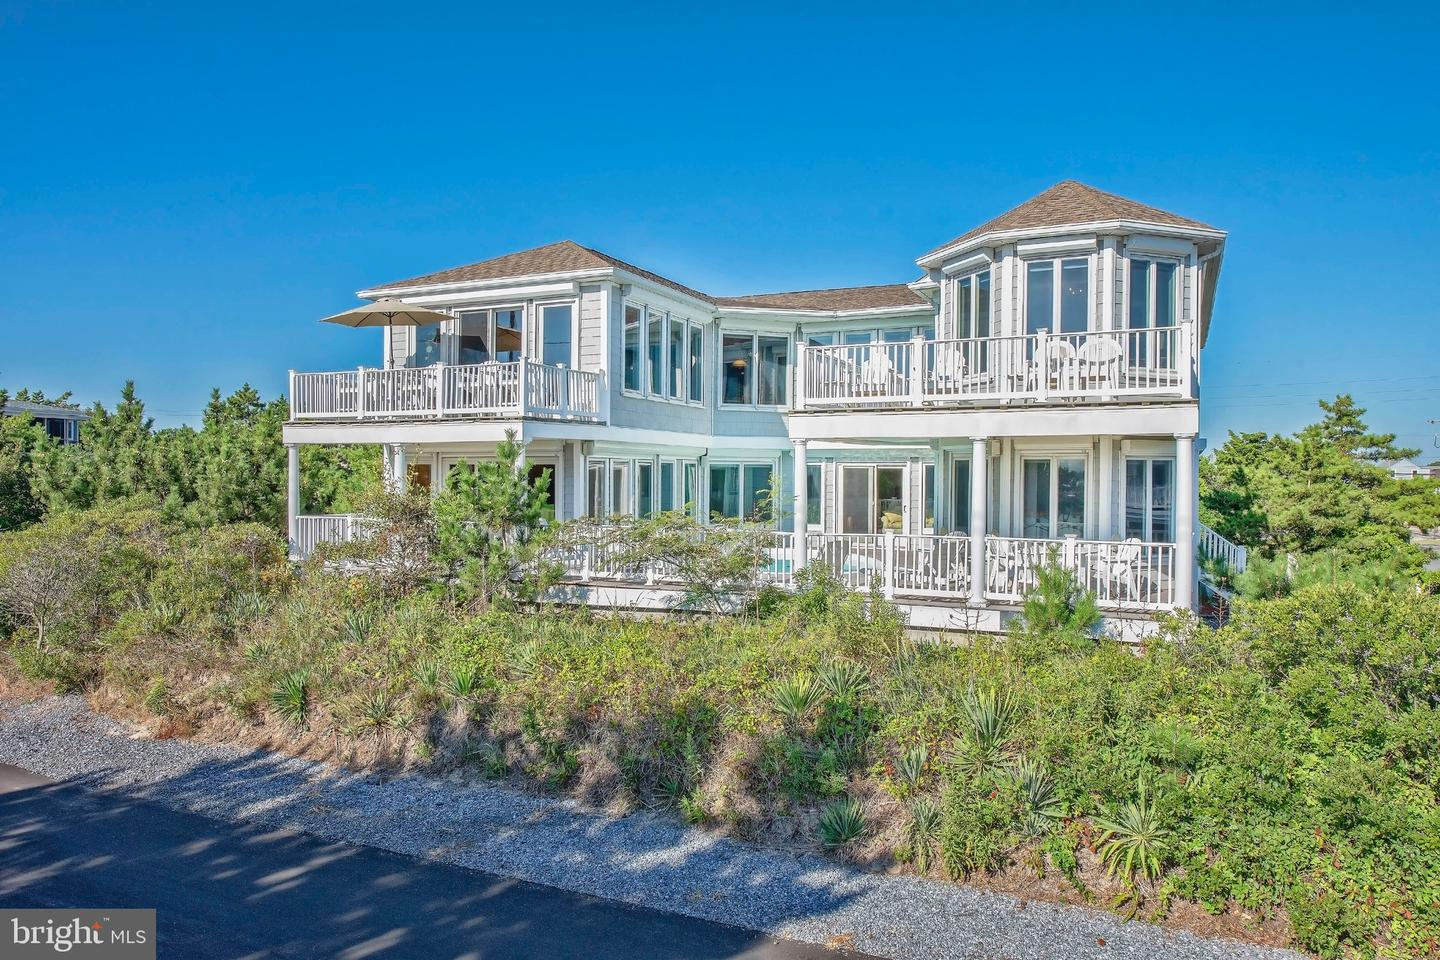 DESU147280-302007866327-2019-08-31-13-42-10 810 Bunting Ave | Fenwick Island, De Real Estate For Sale | MLS# Desu147280  - Suzanne Macnab